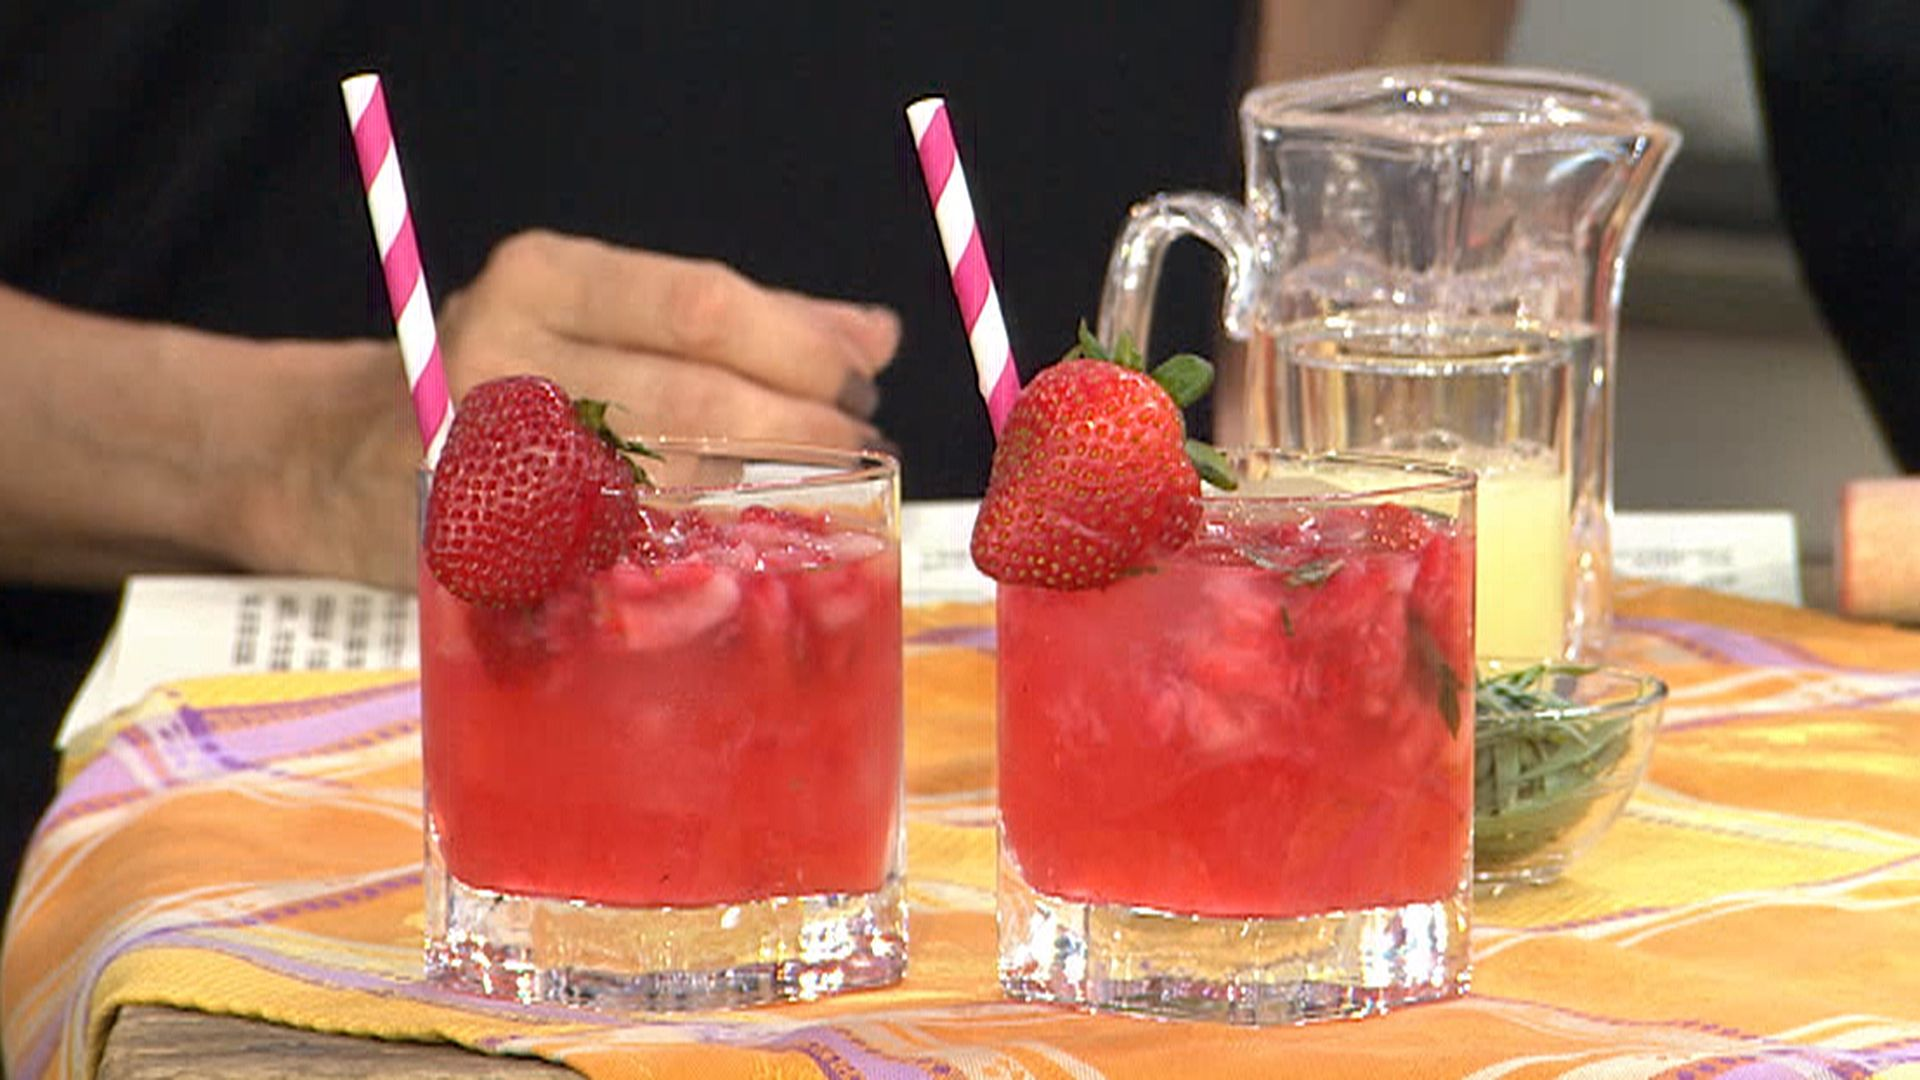 Summer sipping cocktails and more drink pairings for your barbecue jon taffer star of spike tv show bar rescue serves up some forumfinder Image collections